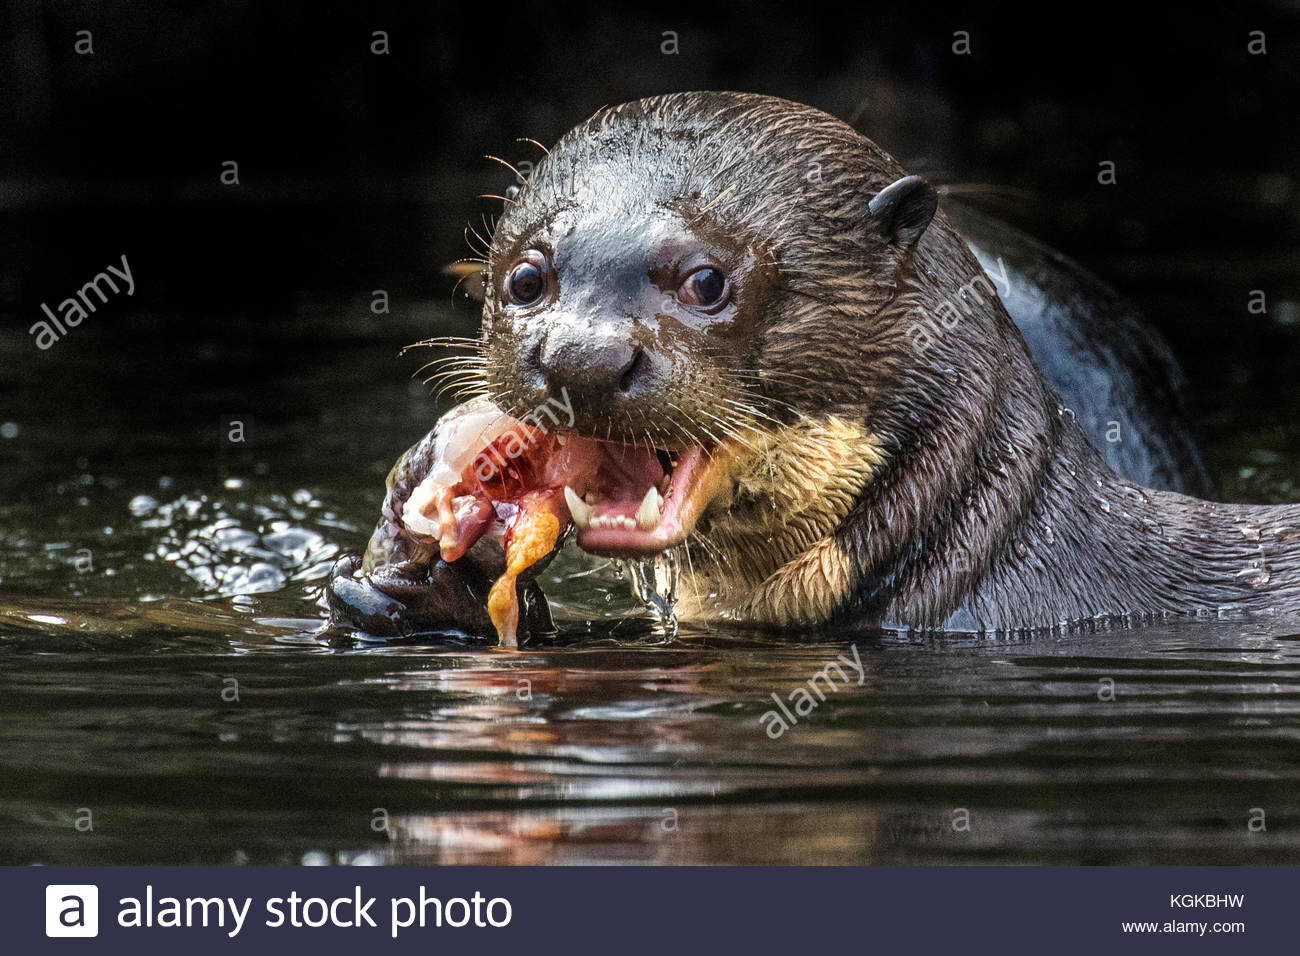 A giant otter or giant river otter, Pteronura brasiliensis, eats a fish. - Stock Image